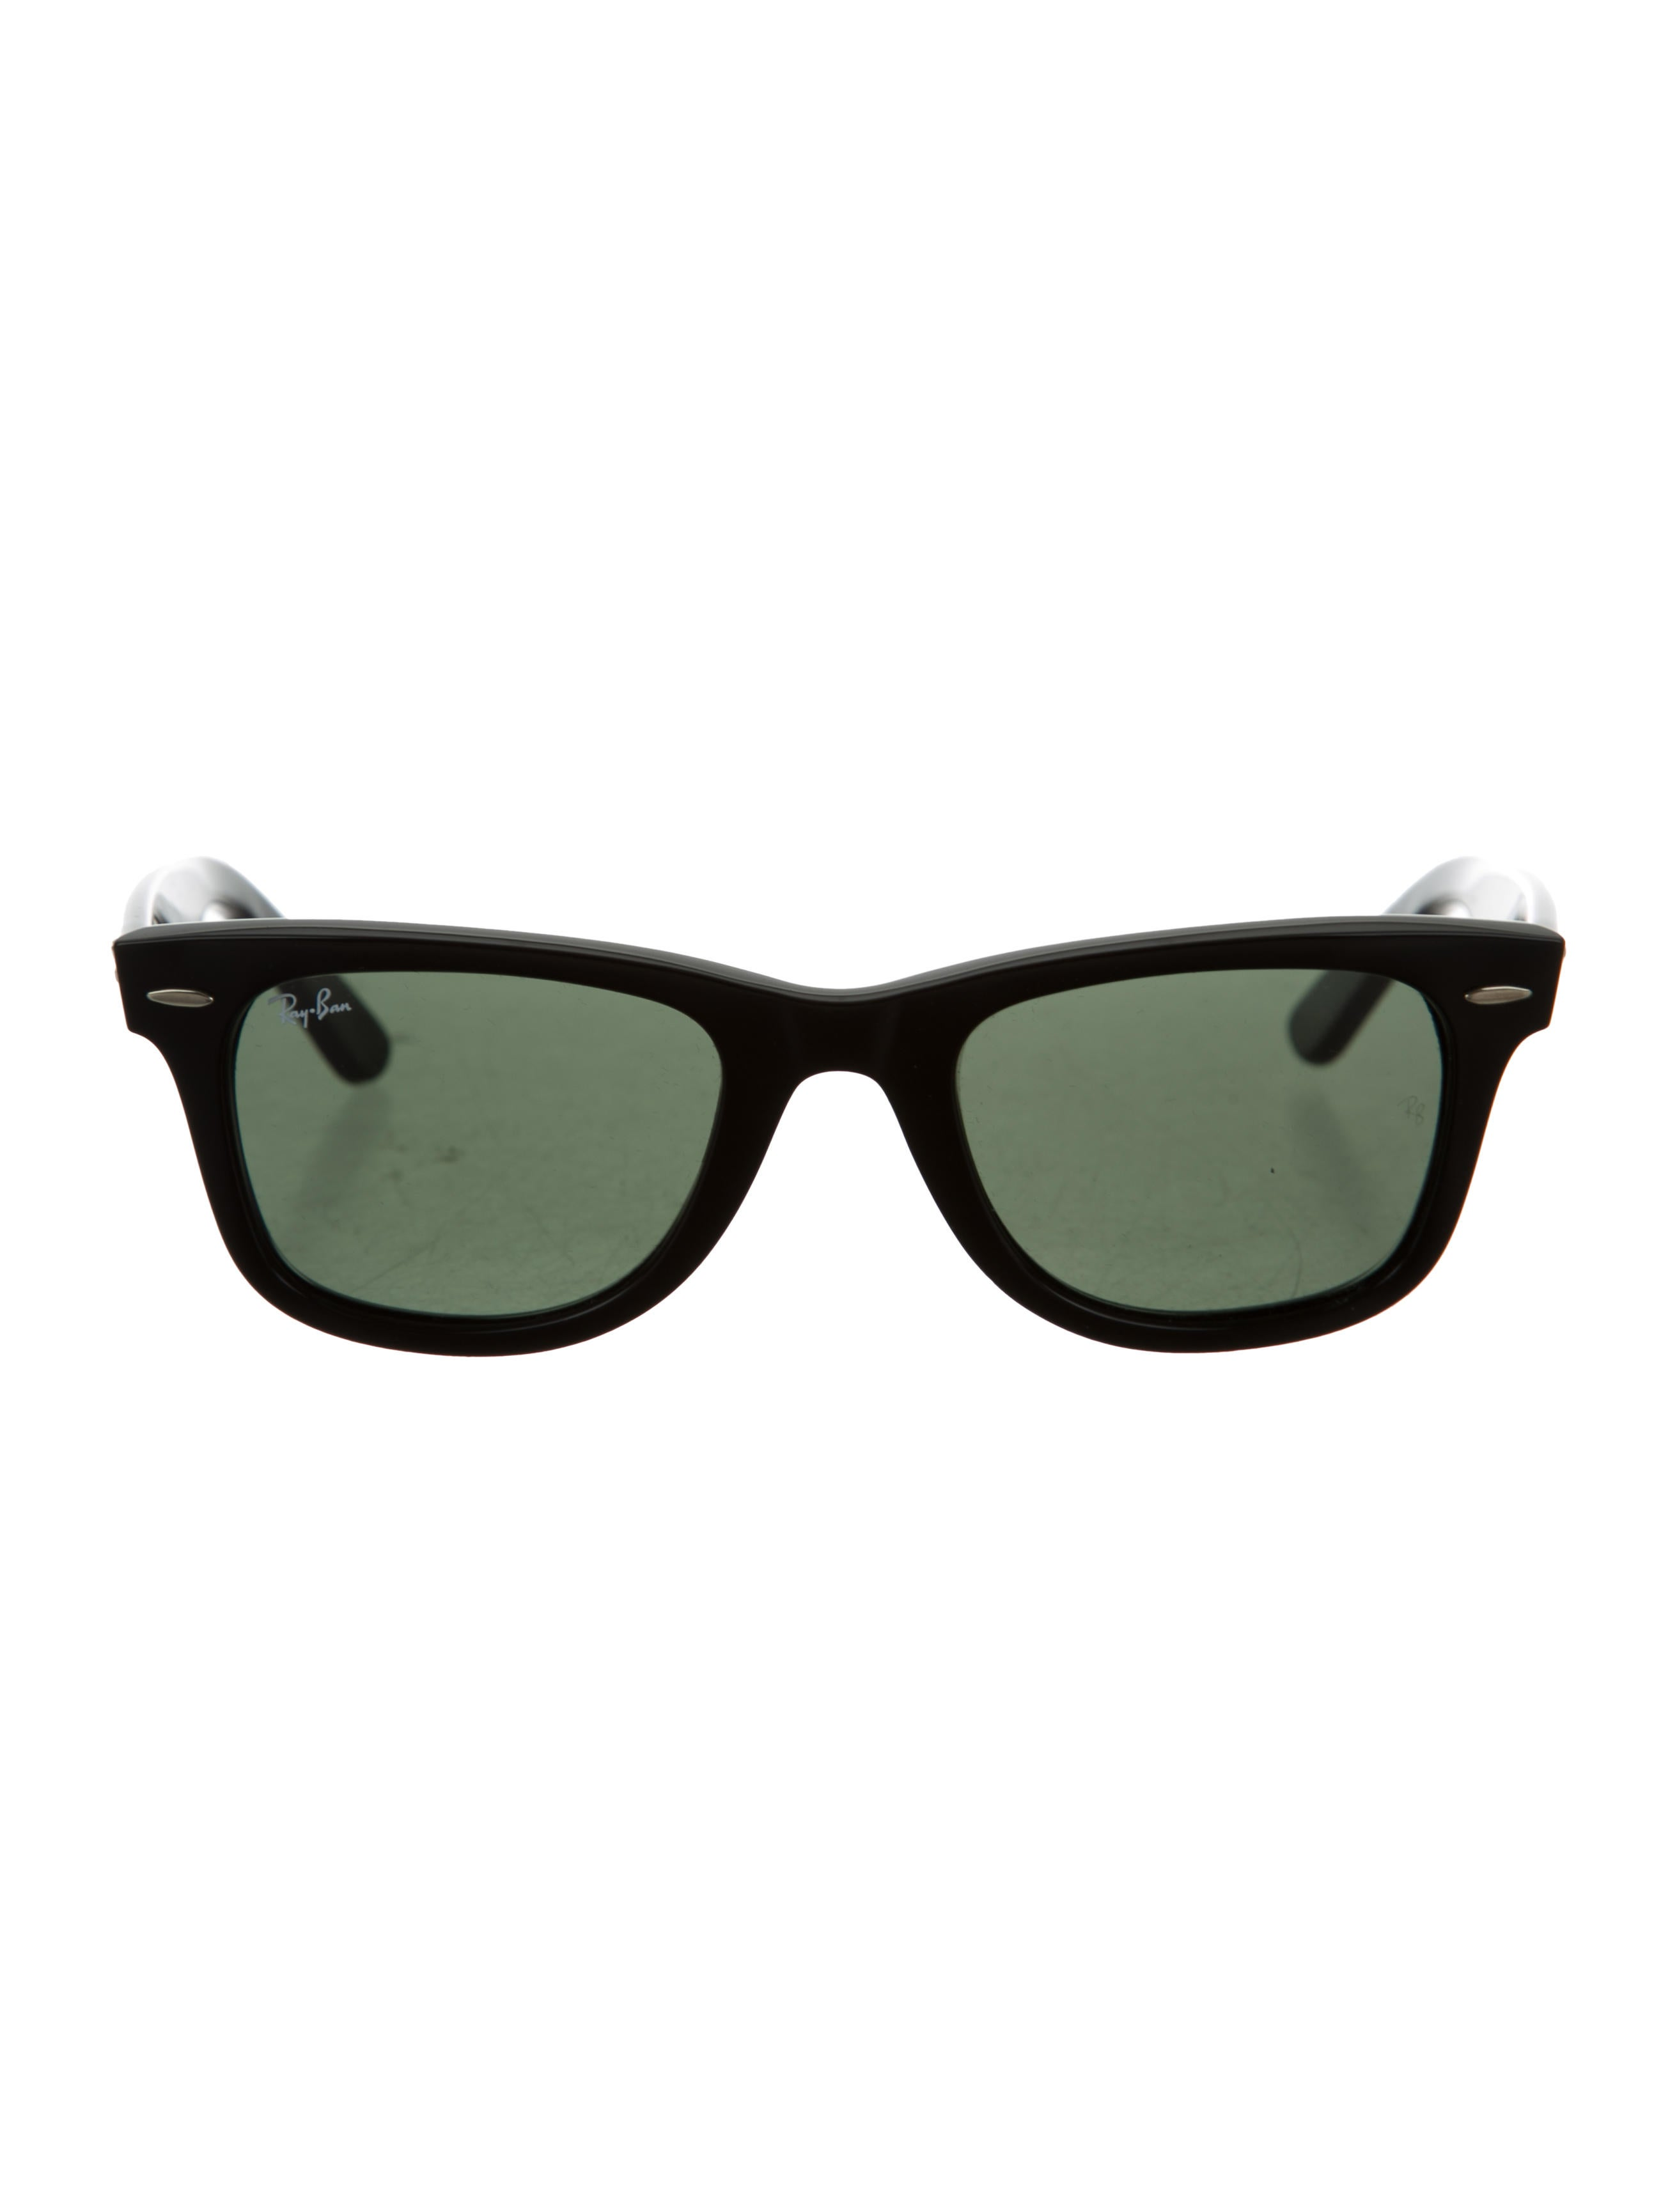 18c6294157f Ray Ban Sunglasses Blue Tint - Bitterroot Public Library